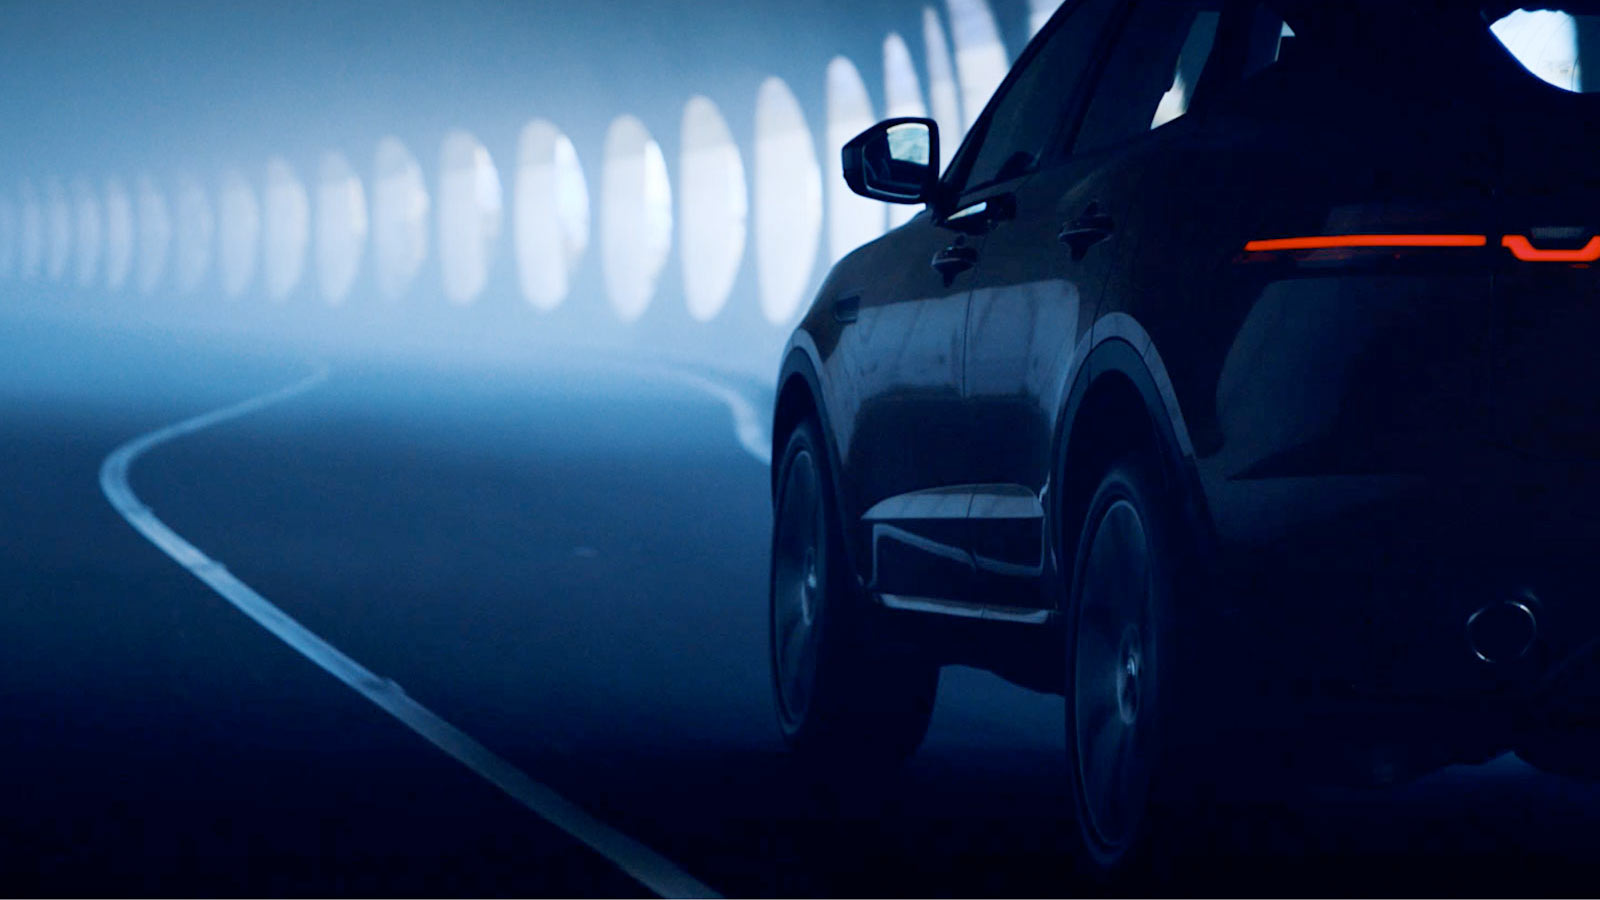 Jaguar E-PACE driving through darkened tunnel.